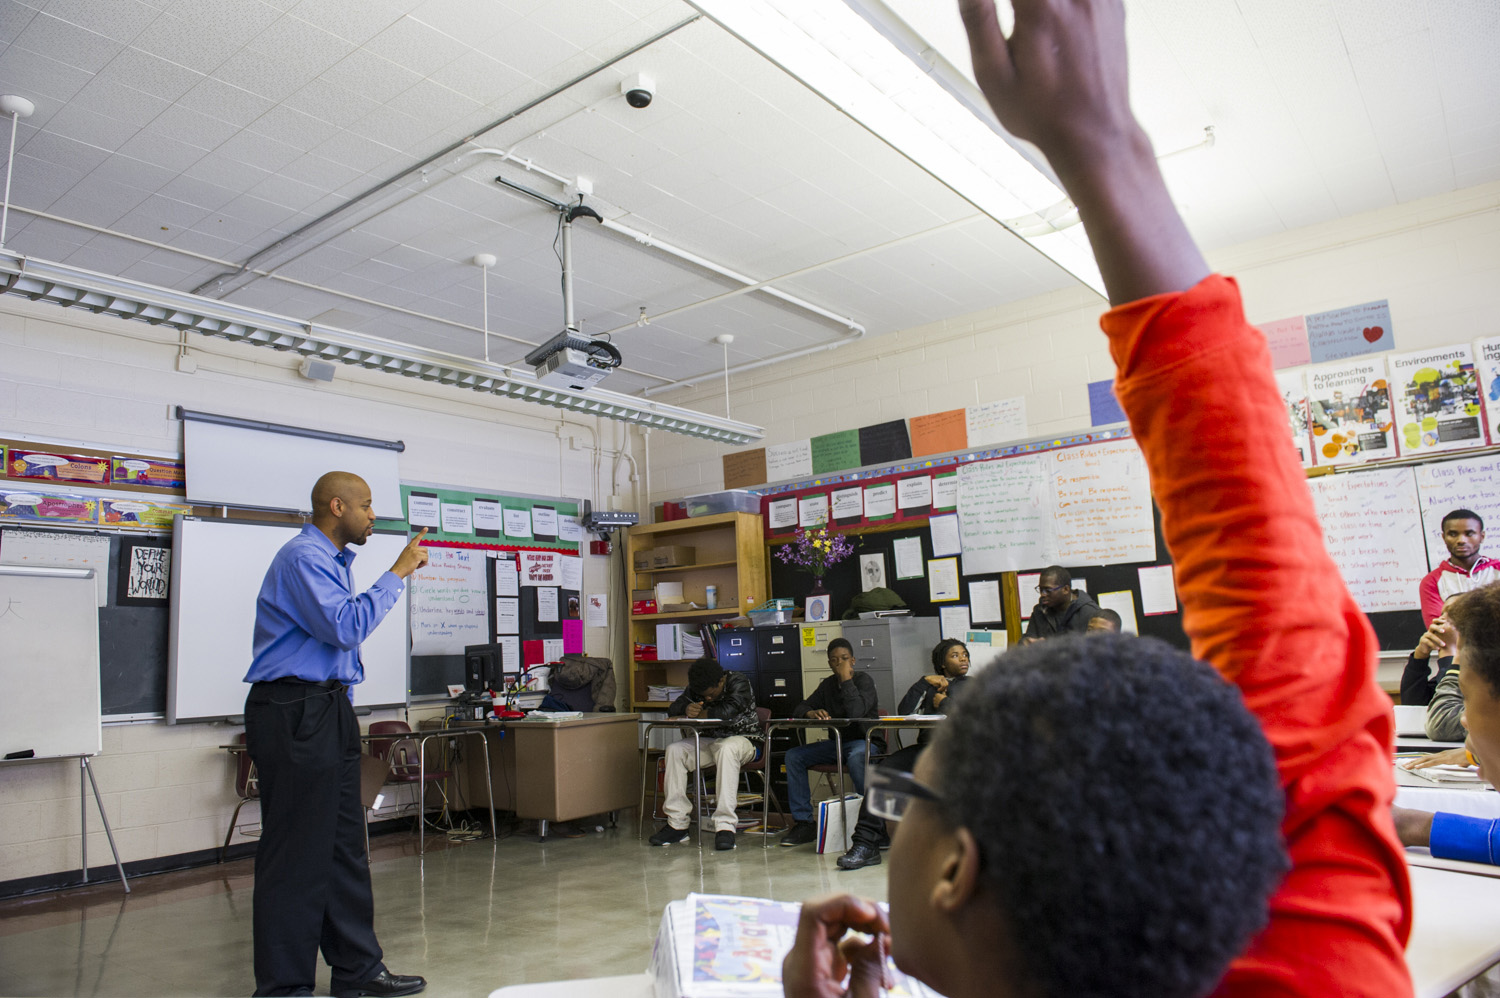 Walker often finds himself in classrooms, comforting and counseling outraged students in the wake of growing outrage over the killings of unarmed black men in Ferguson, Missouri and New York. (Photo by Kim Palmer)